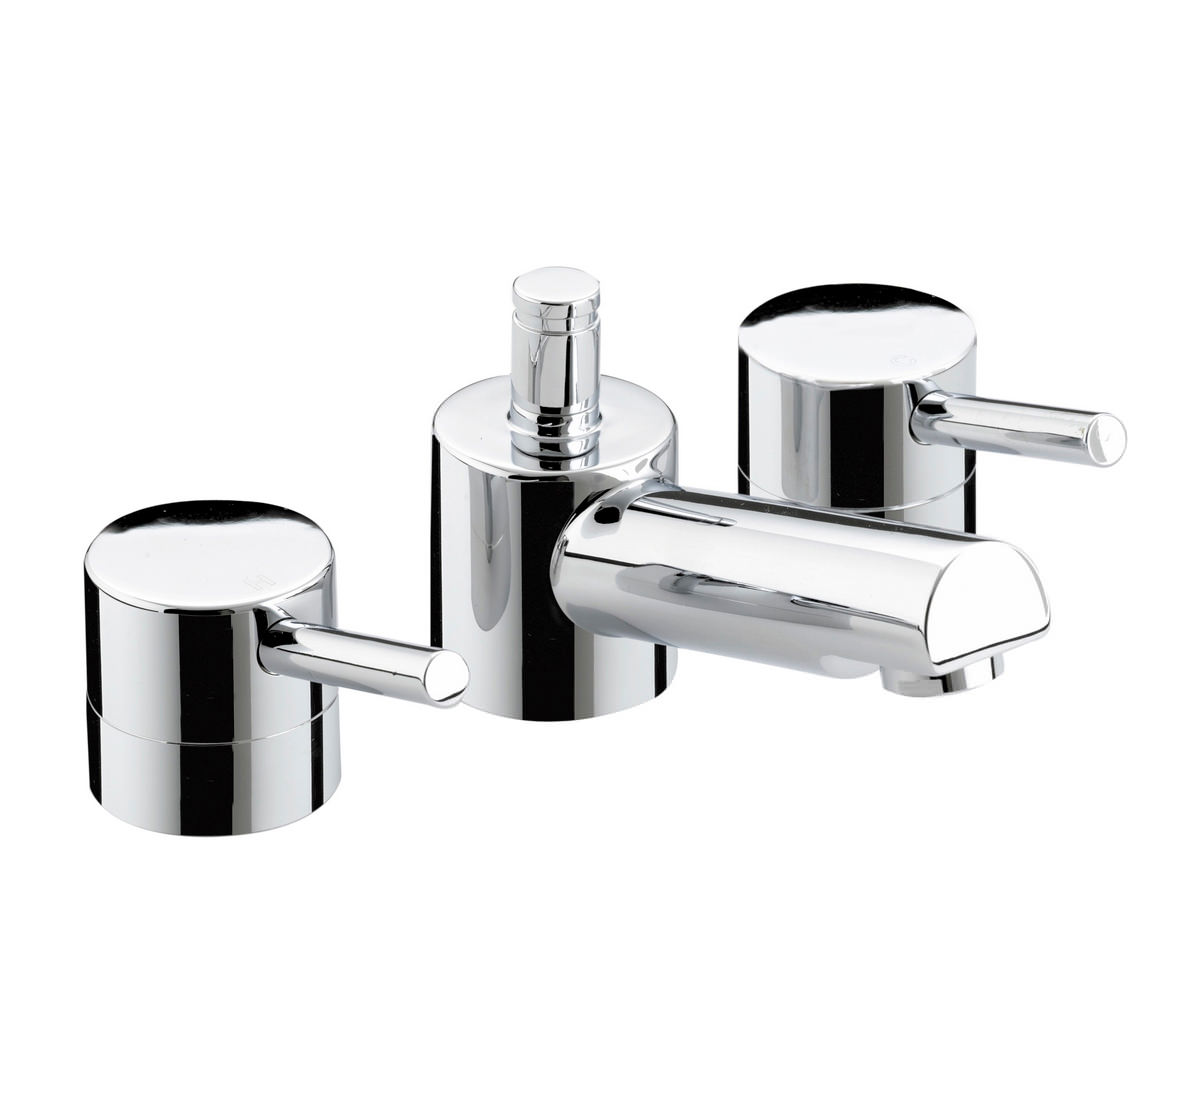 Bristan Prism 3 Hole Basin Mixer Tap With Pop Up Waste -PM 3HBAS C